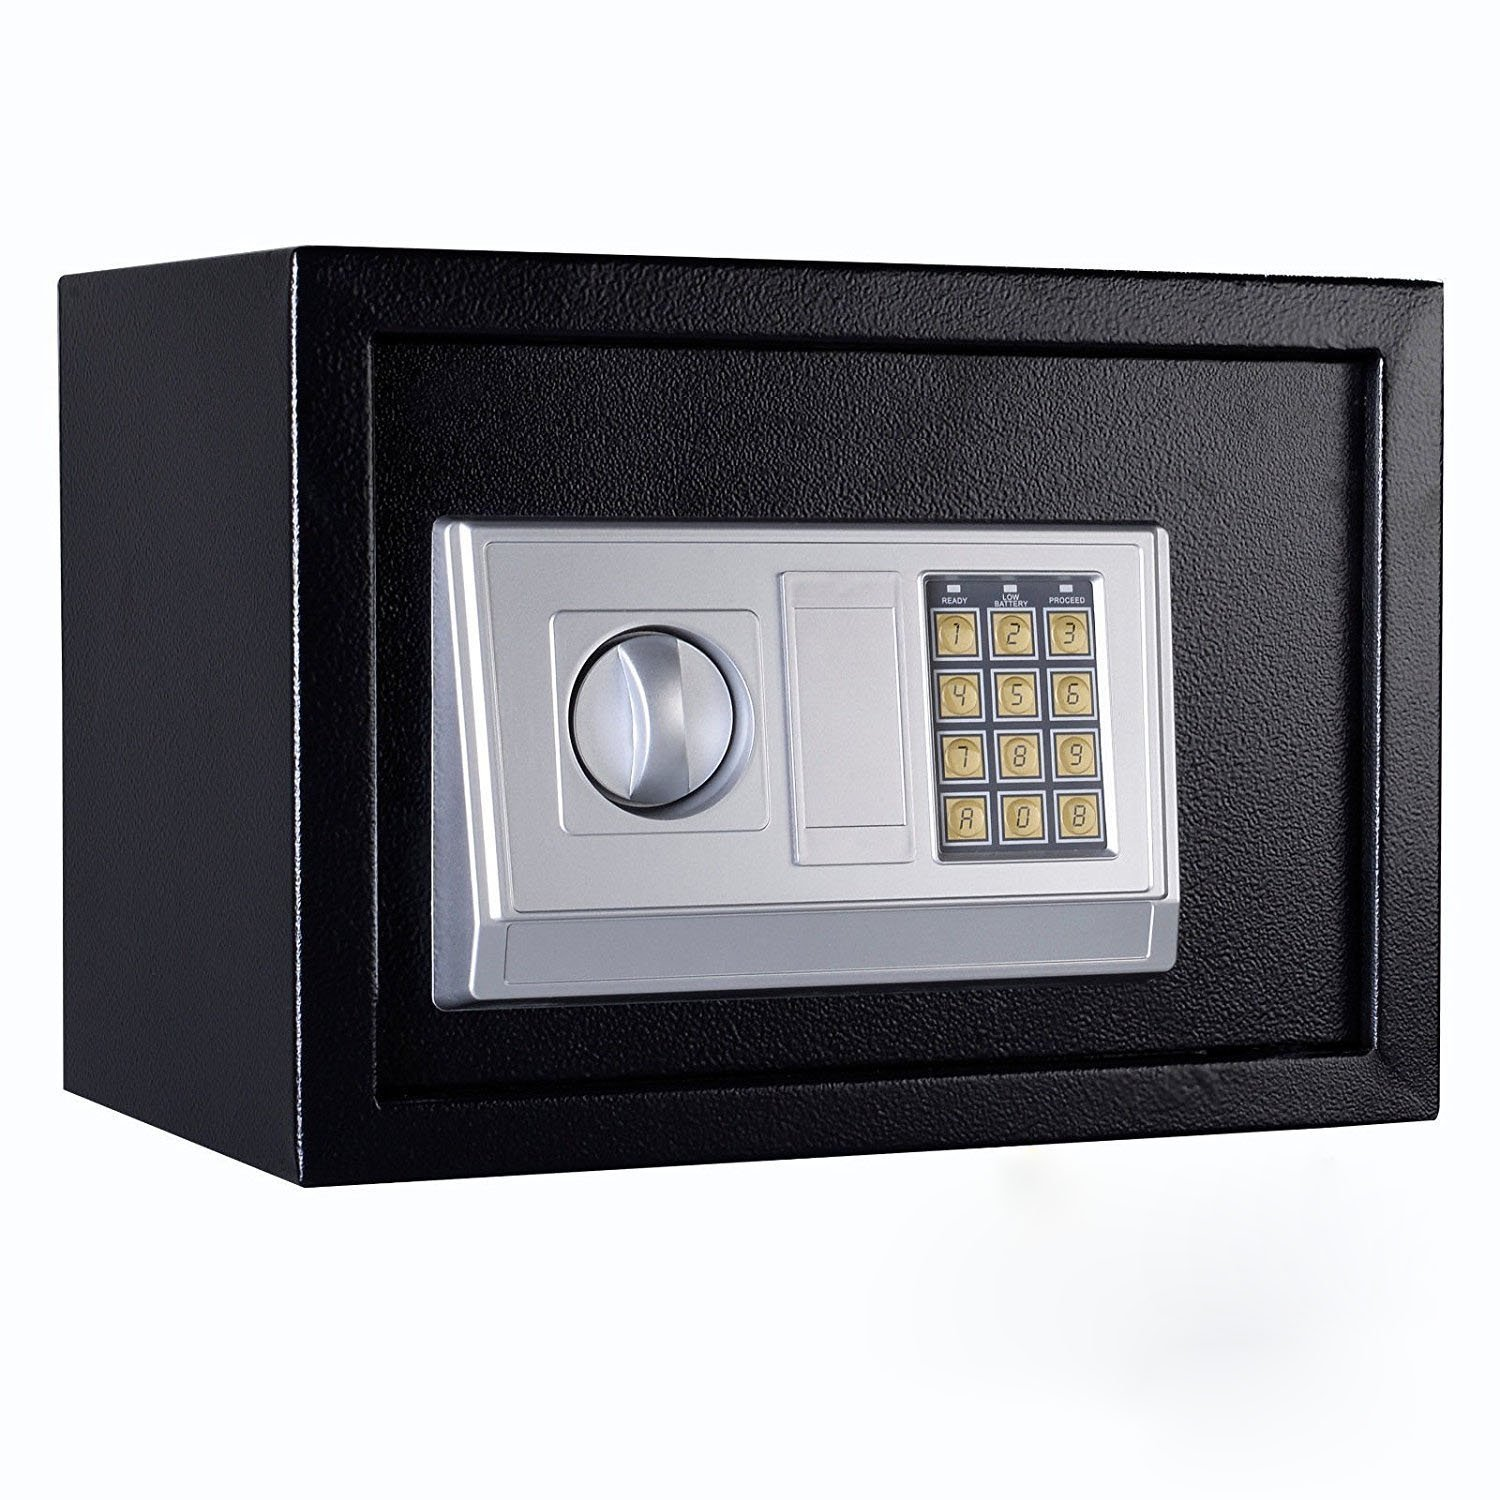 FixtureDisplays 13.8 x 9.8 x 9.8 Safe Security Box Digital Safe Box Black Security Box with Digital Lock 18133-NPF by FixtureDisplays